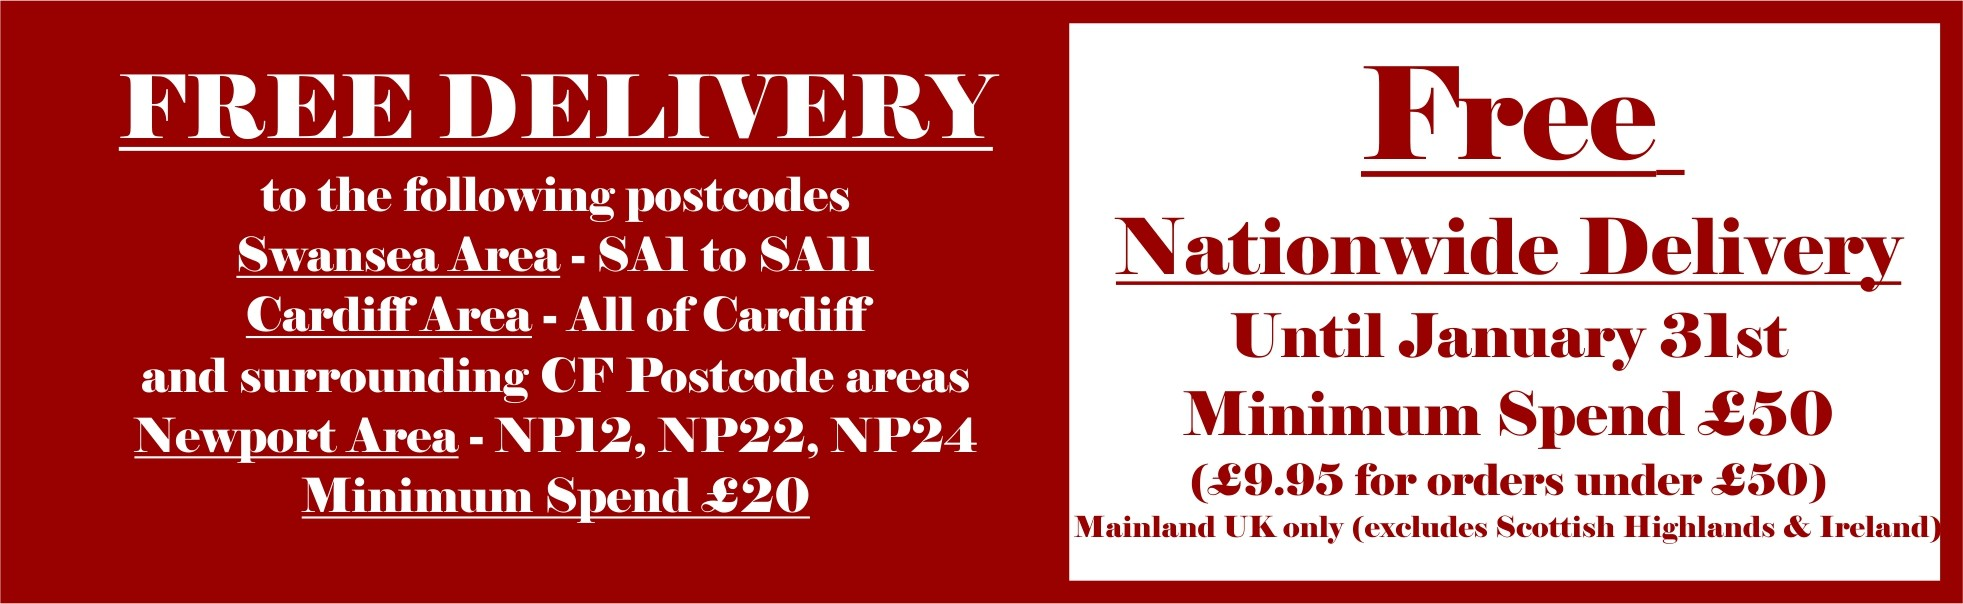 Free Nationwide Delivery when you spend over £50